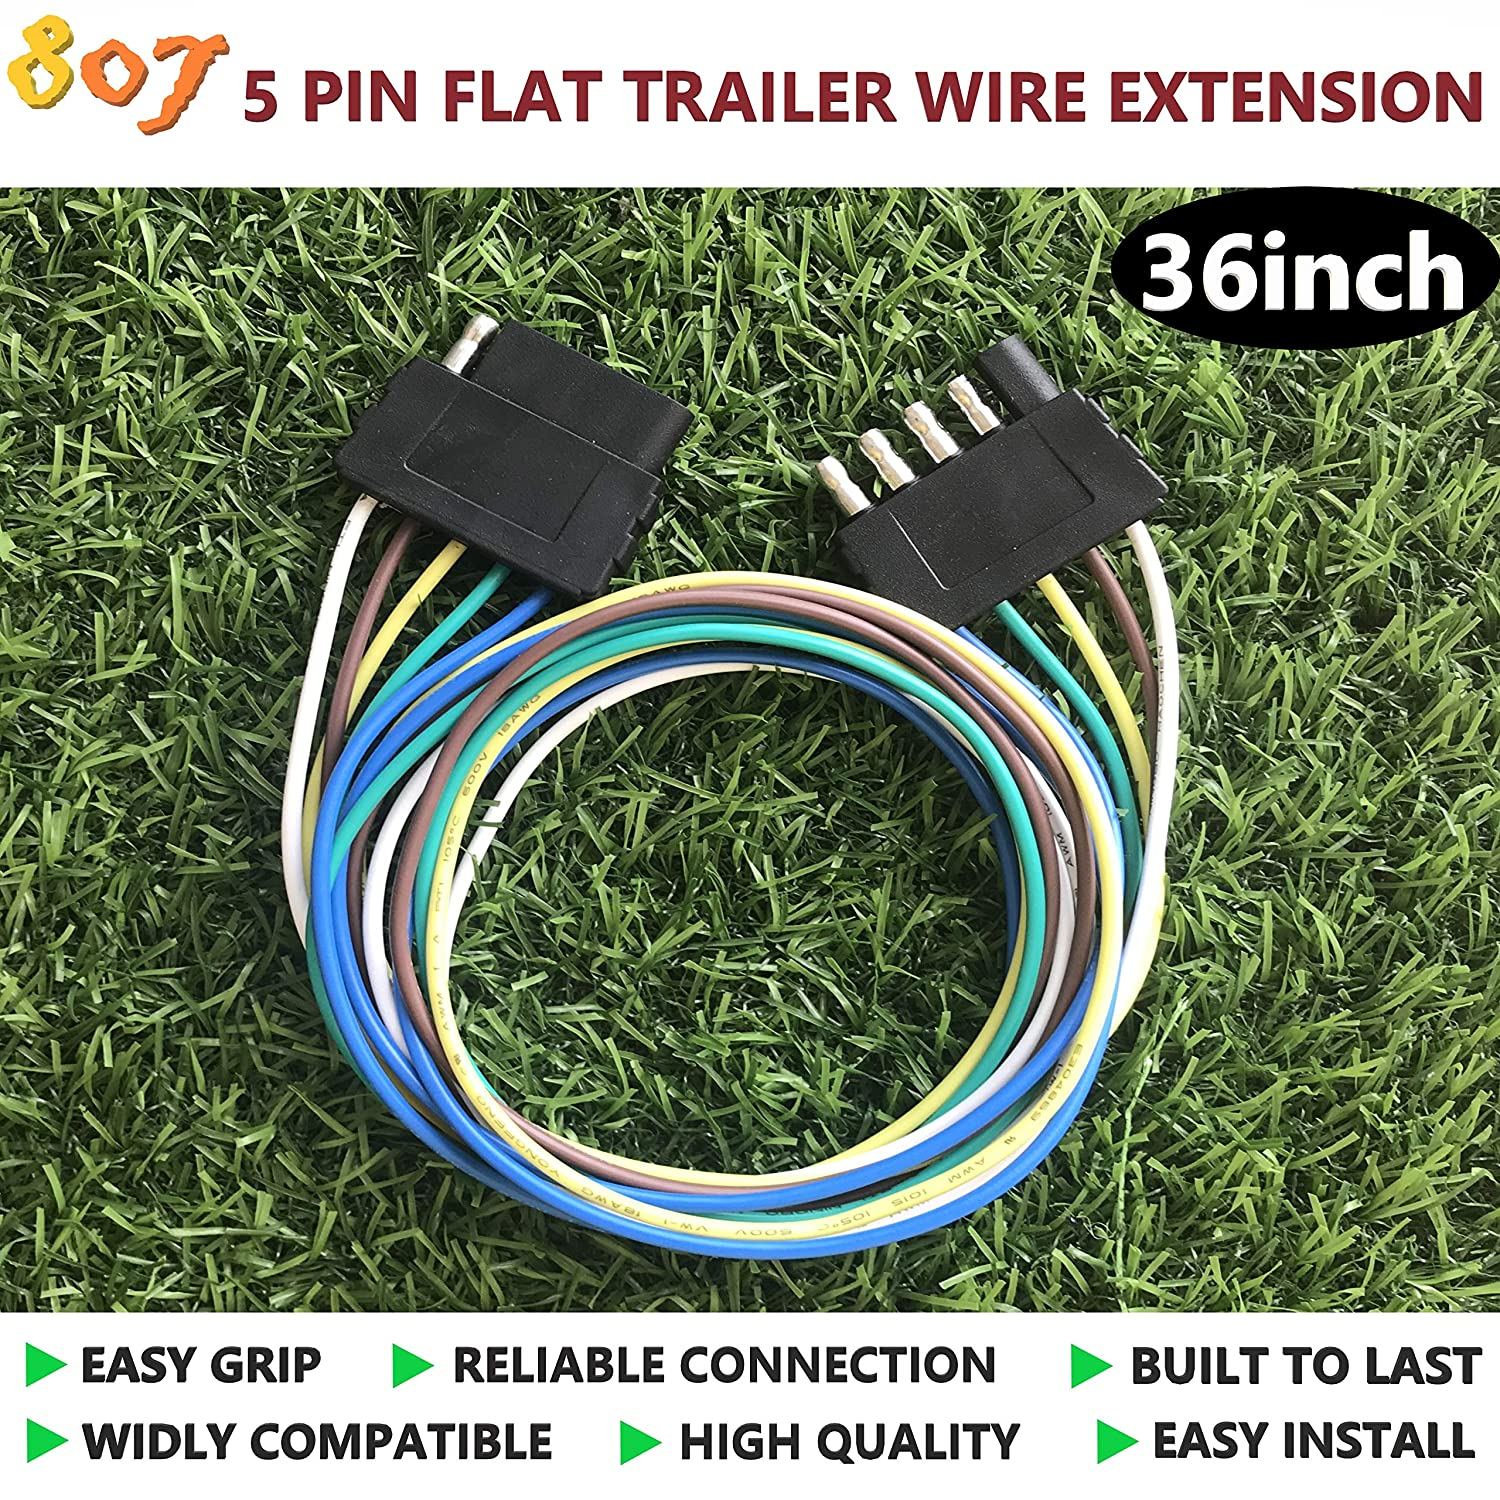 807 5-pin Trailer Wire Extension 36inch for LED ke Tailgate Light  on